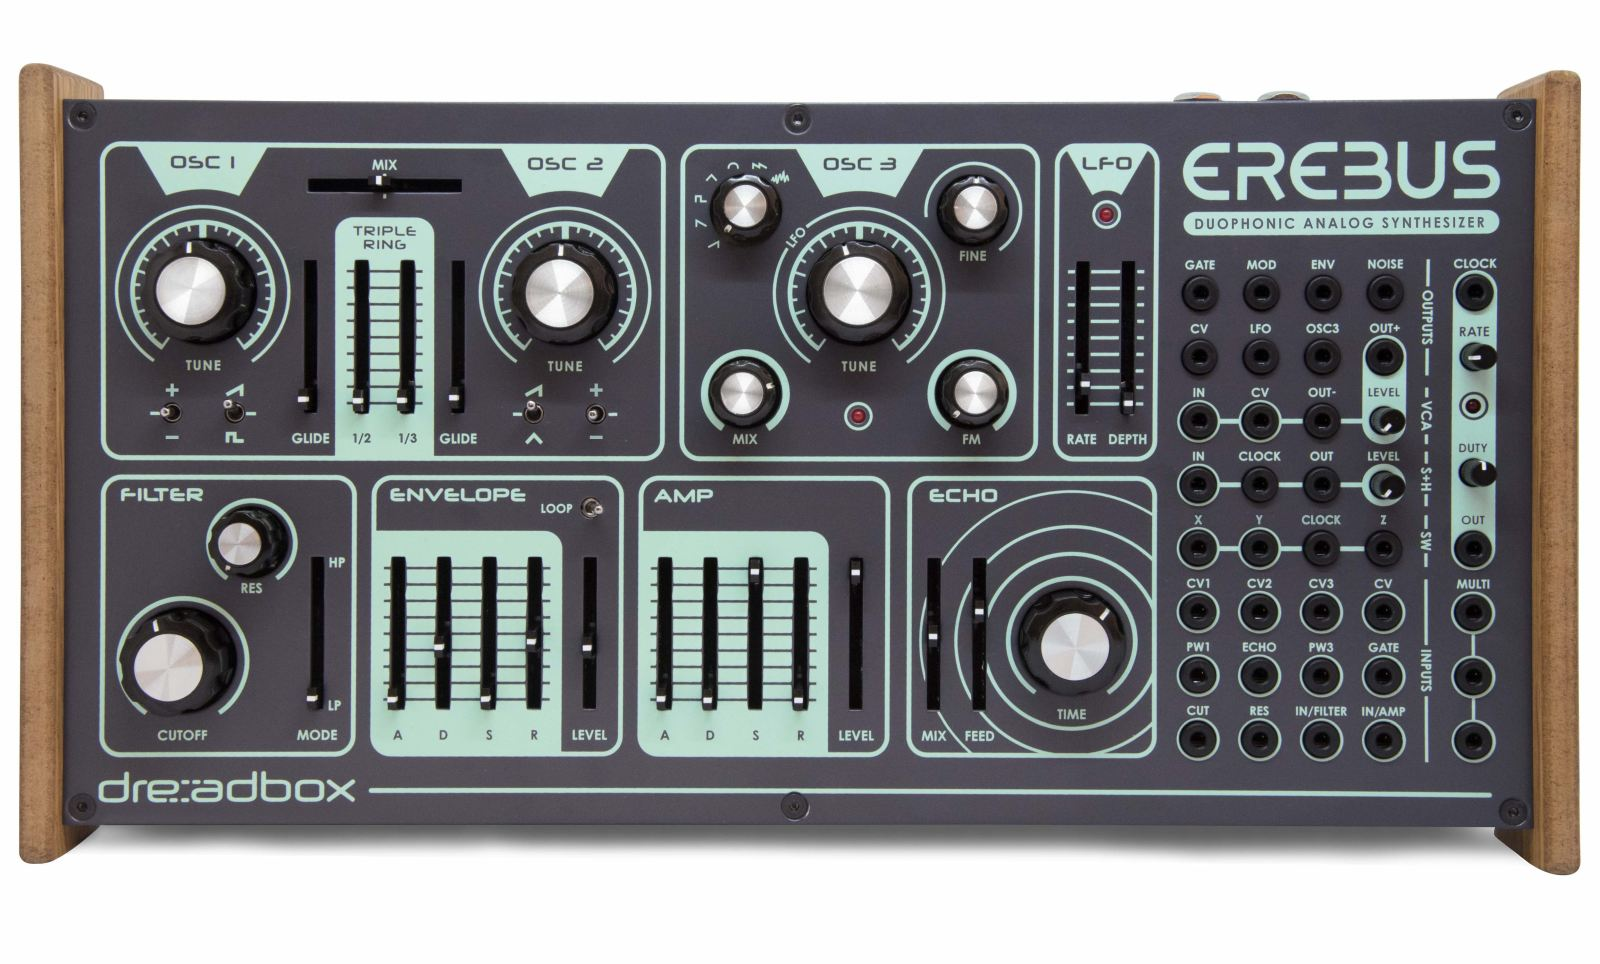 dreadbox Erebus V3 Analogsynthesizer